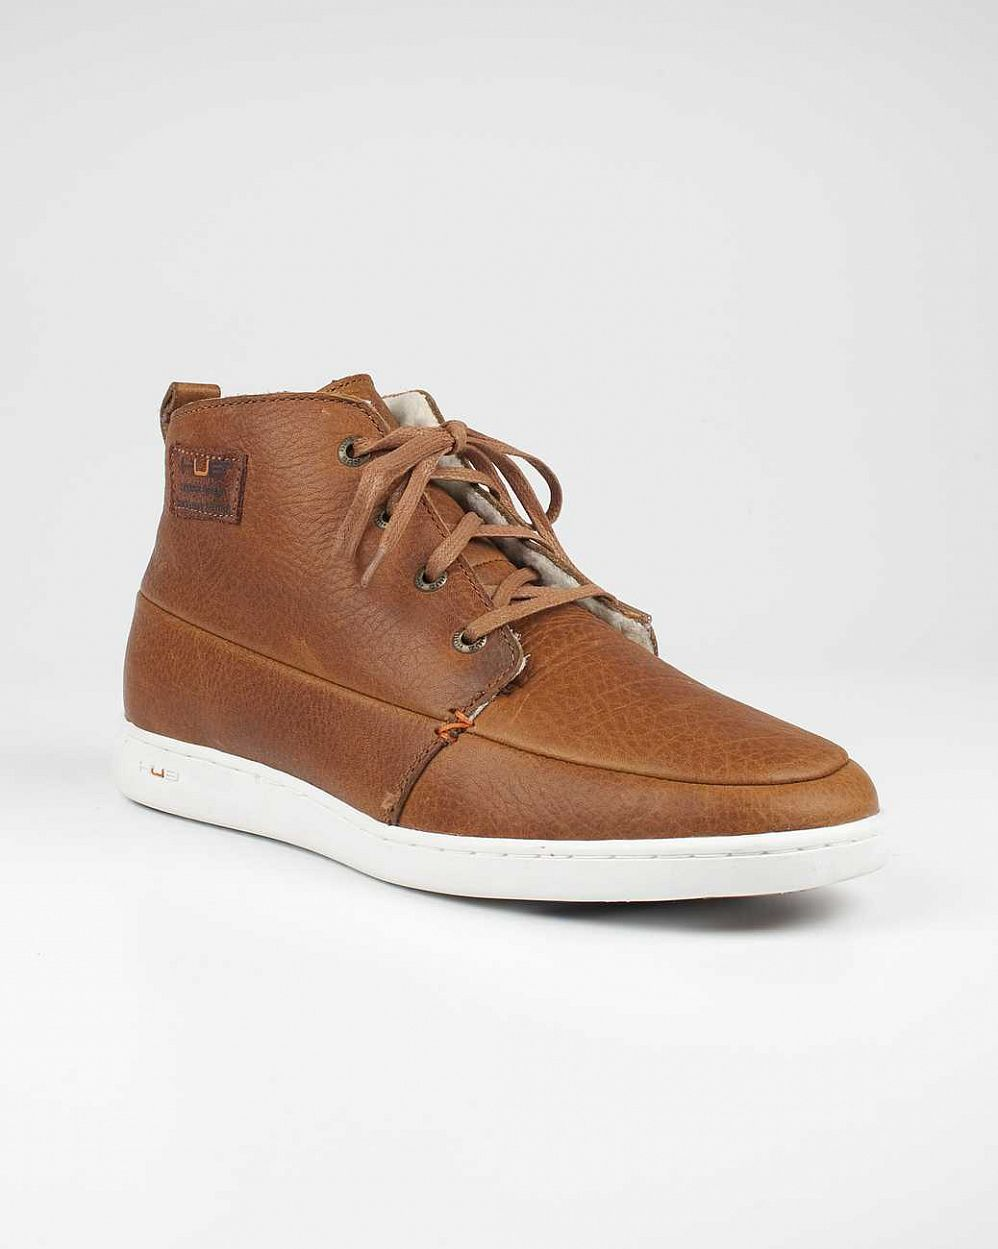 купить Ботинки Hubfootwear Kingston Wool Leather tobacco white в Москве